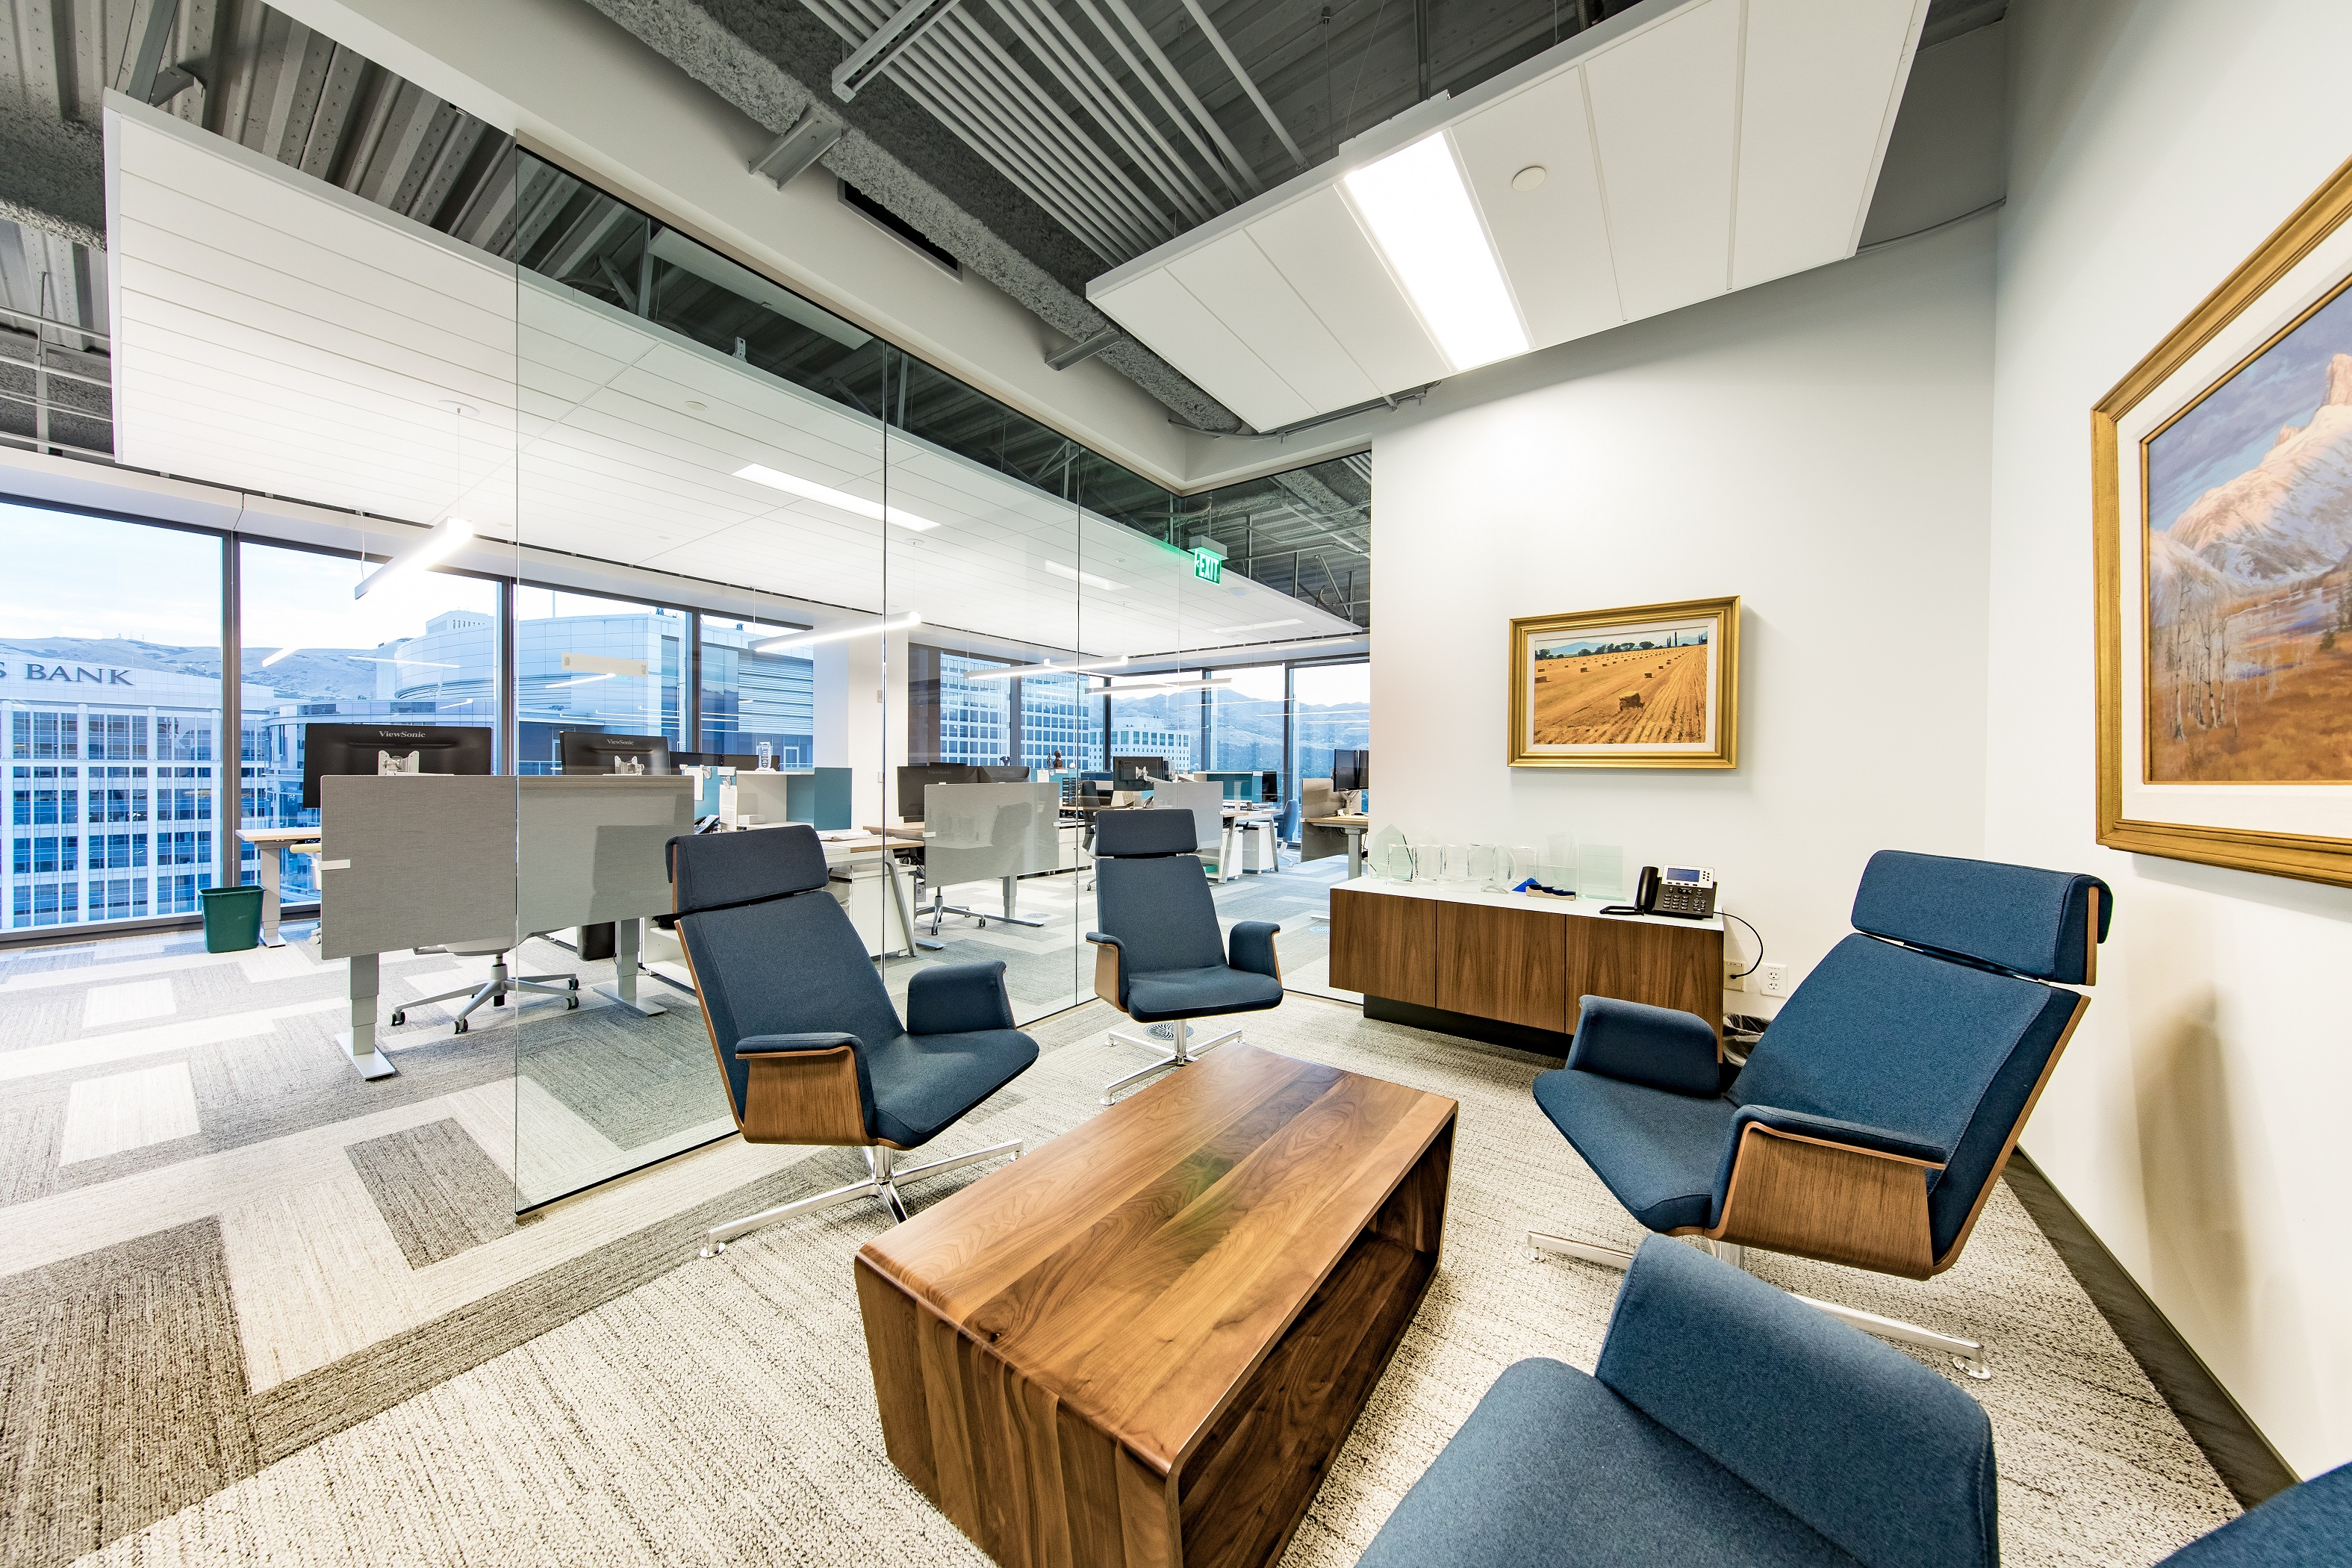 An interior meeting room has glass walls and four padded, semi-reclined chairs surrounding a wooden coffee table.